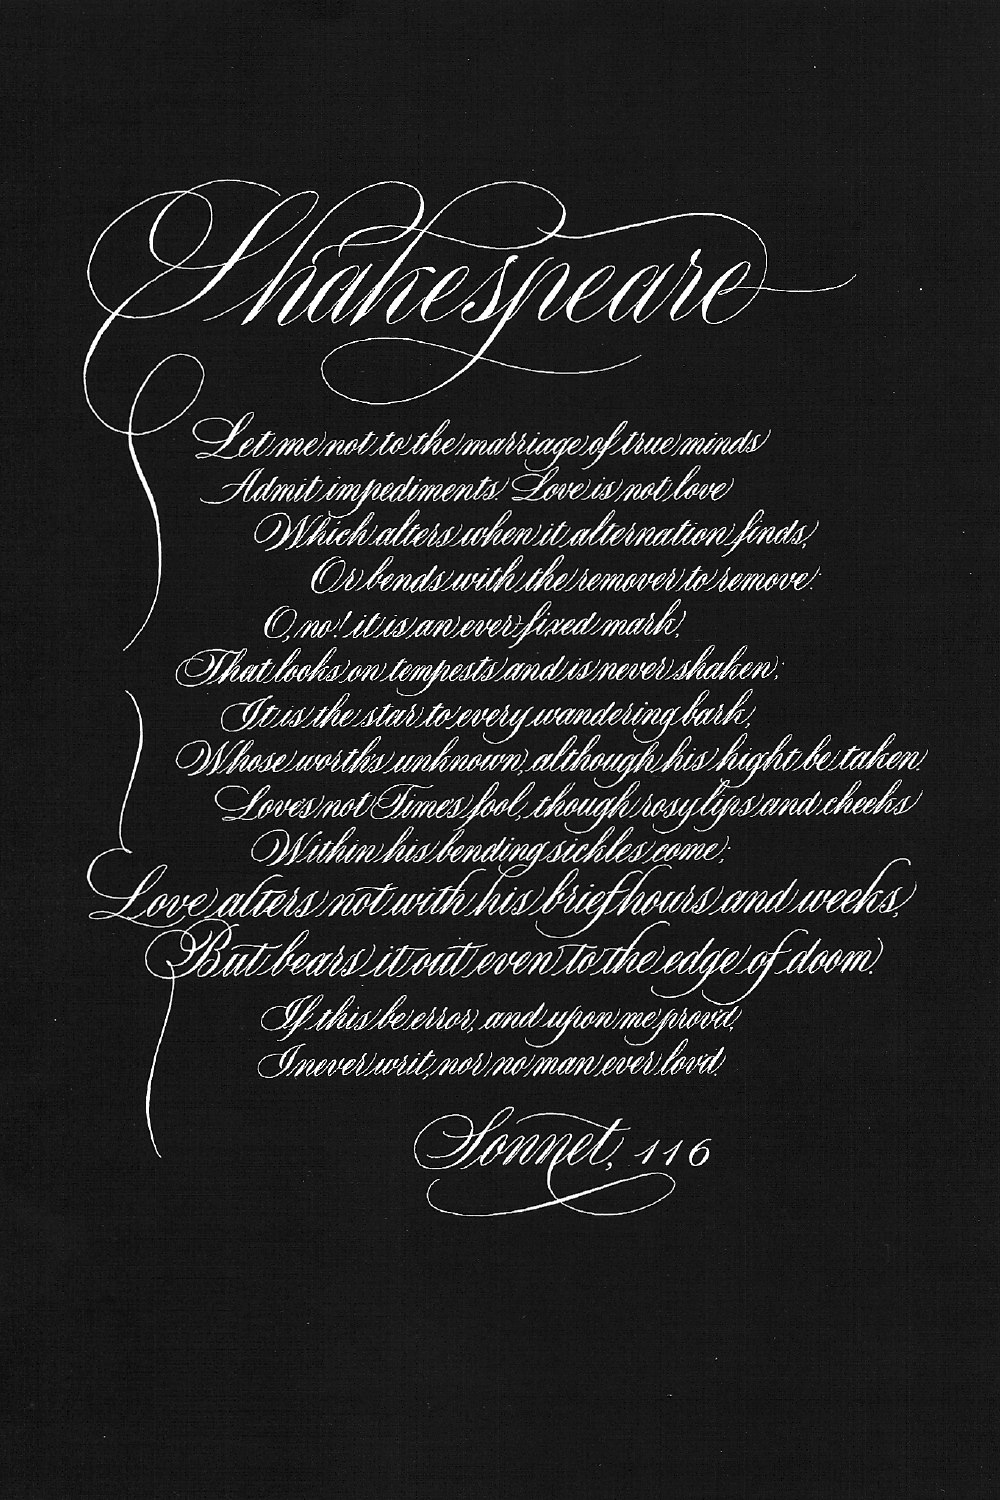 sonnet 116 by shakespeare Let me not to the marriage of true minds click here for a complete text of sonnet 116 by william shakespeare.